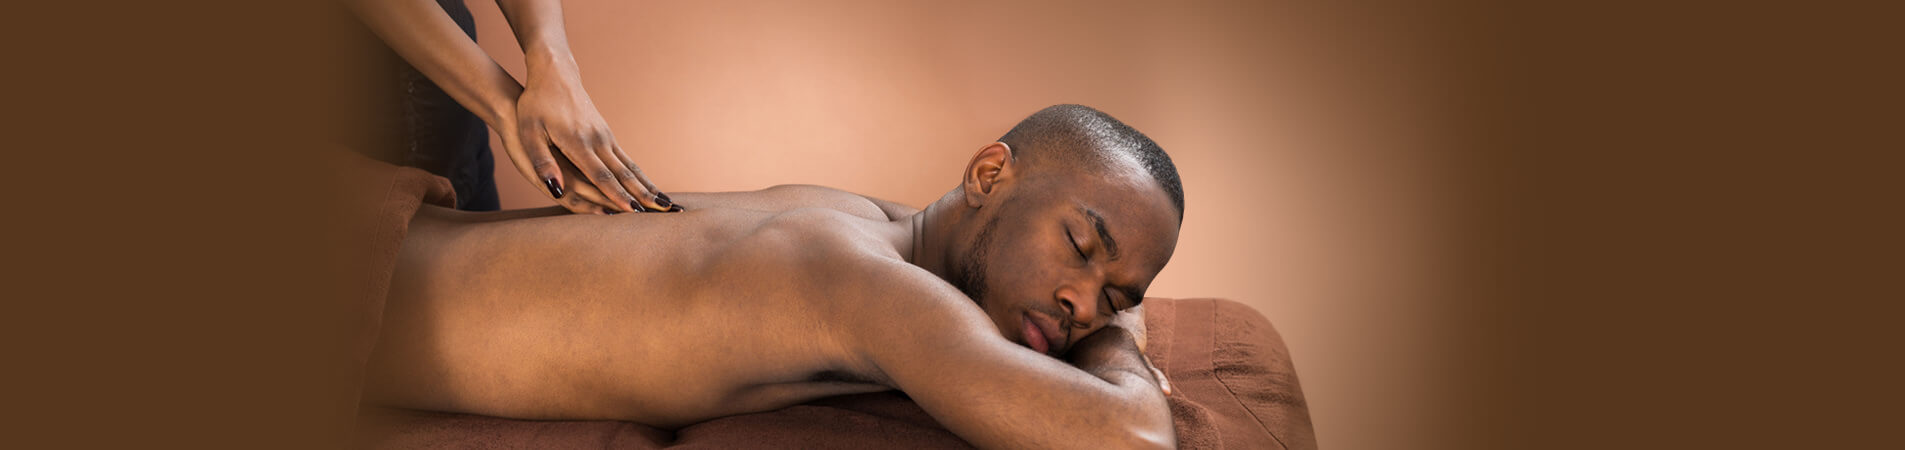 Massage in Accra, East Legon